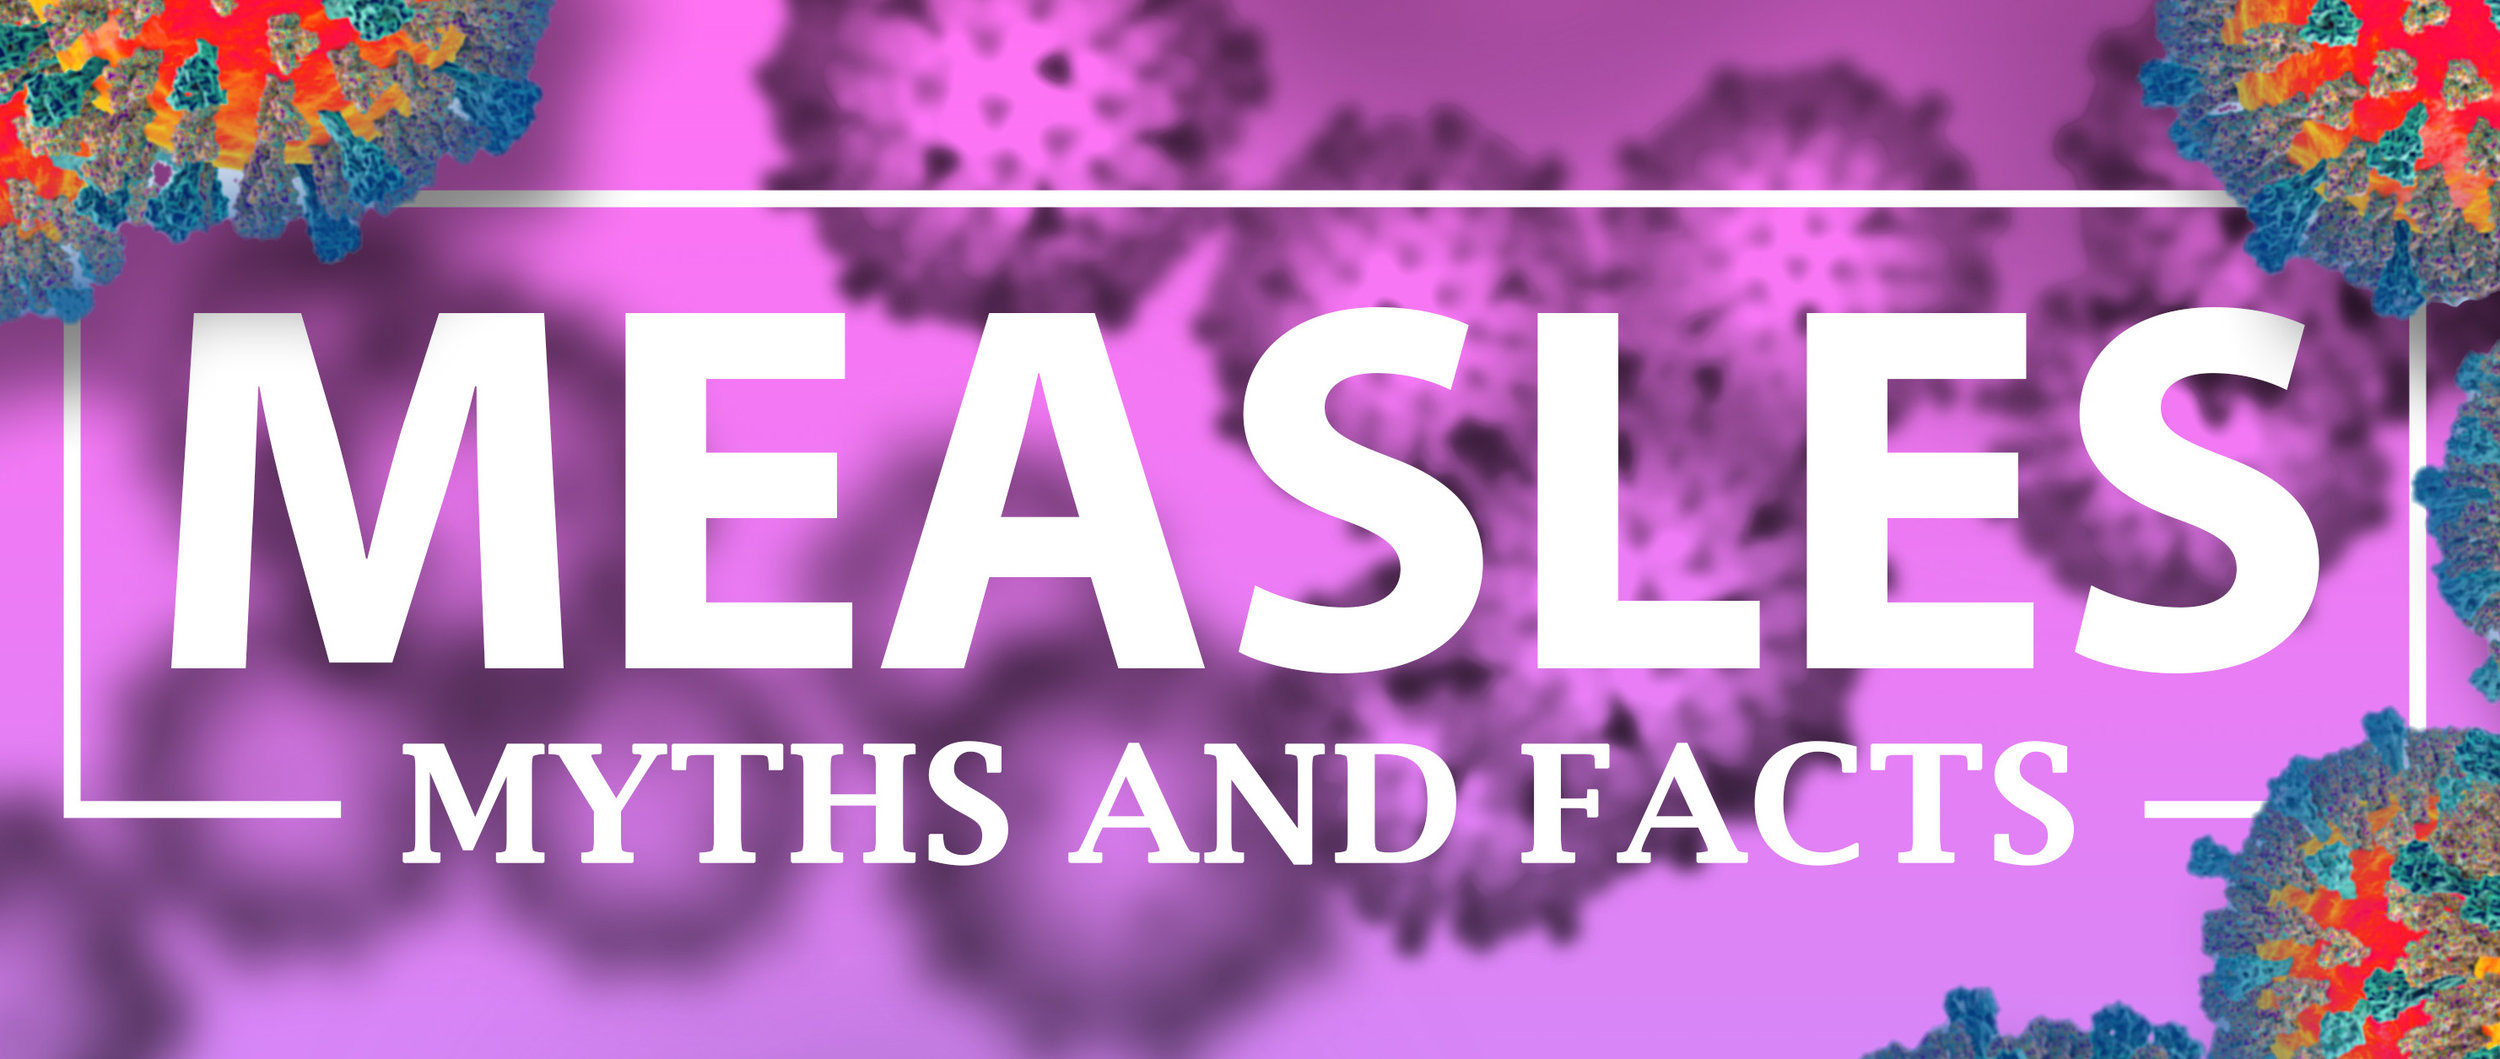 Measles - Myths and Facts.jpg